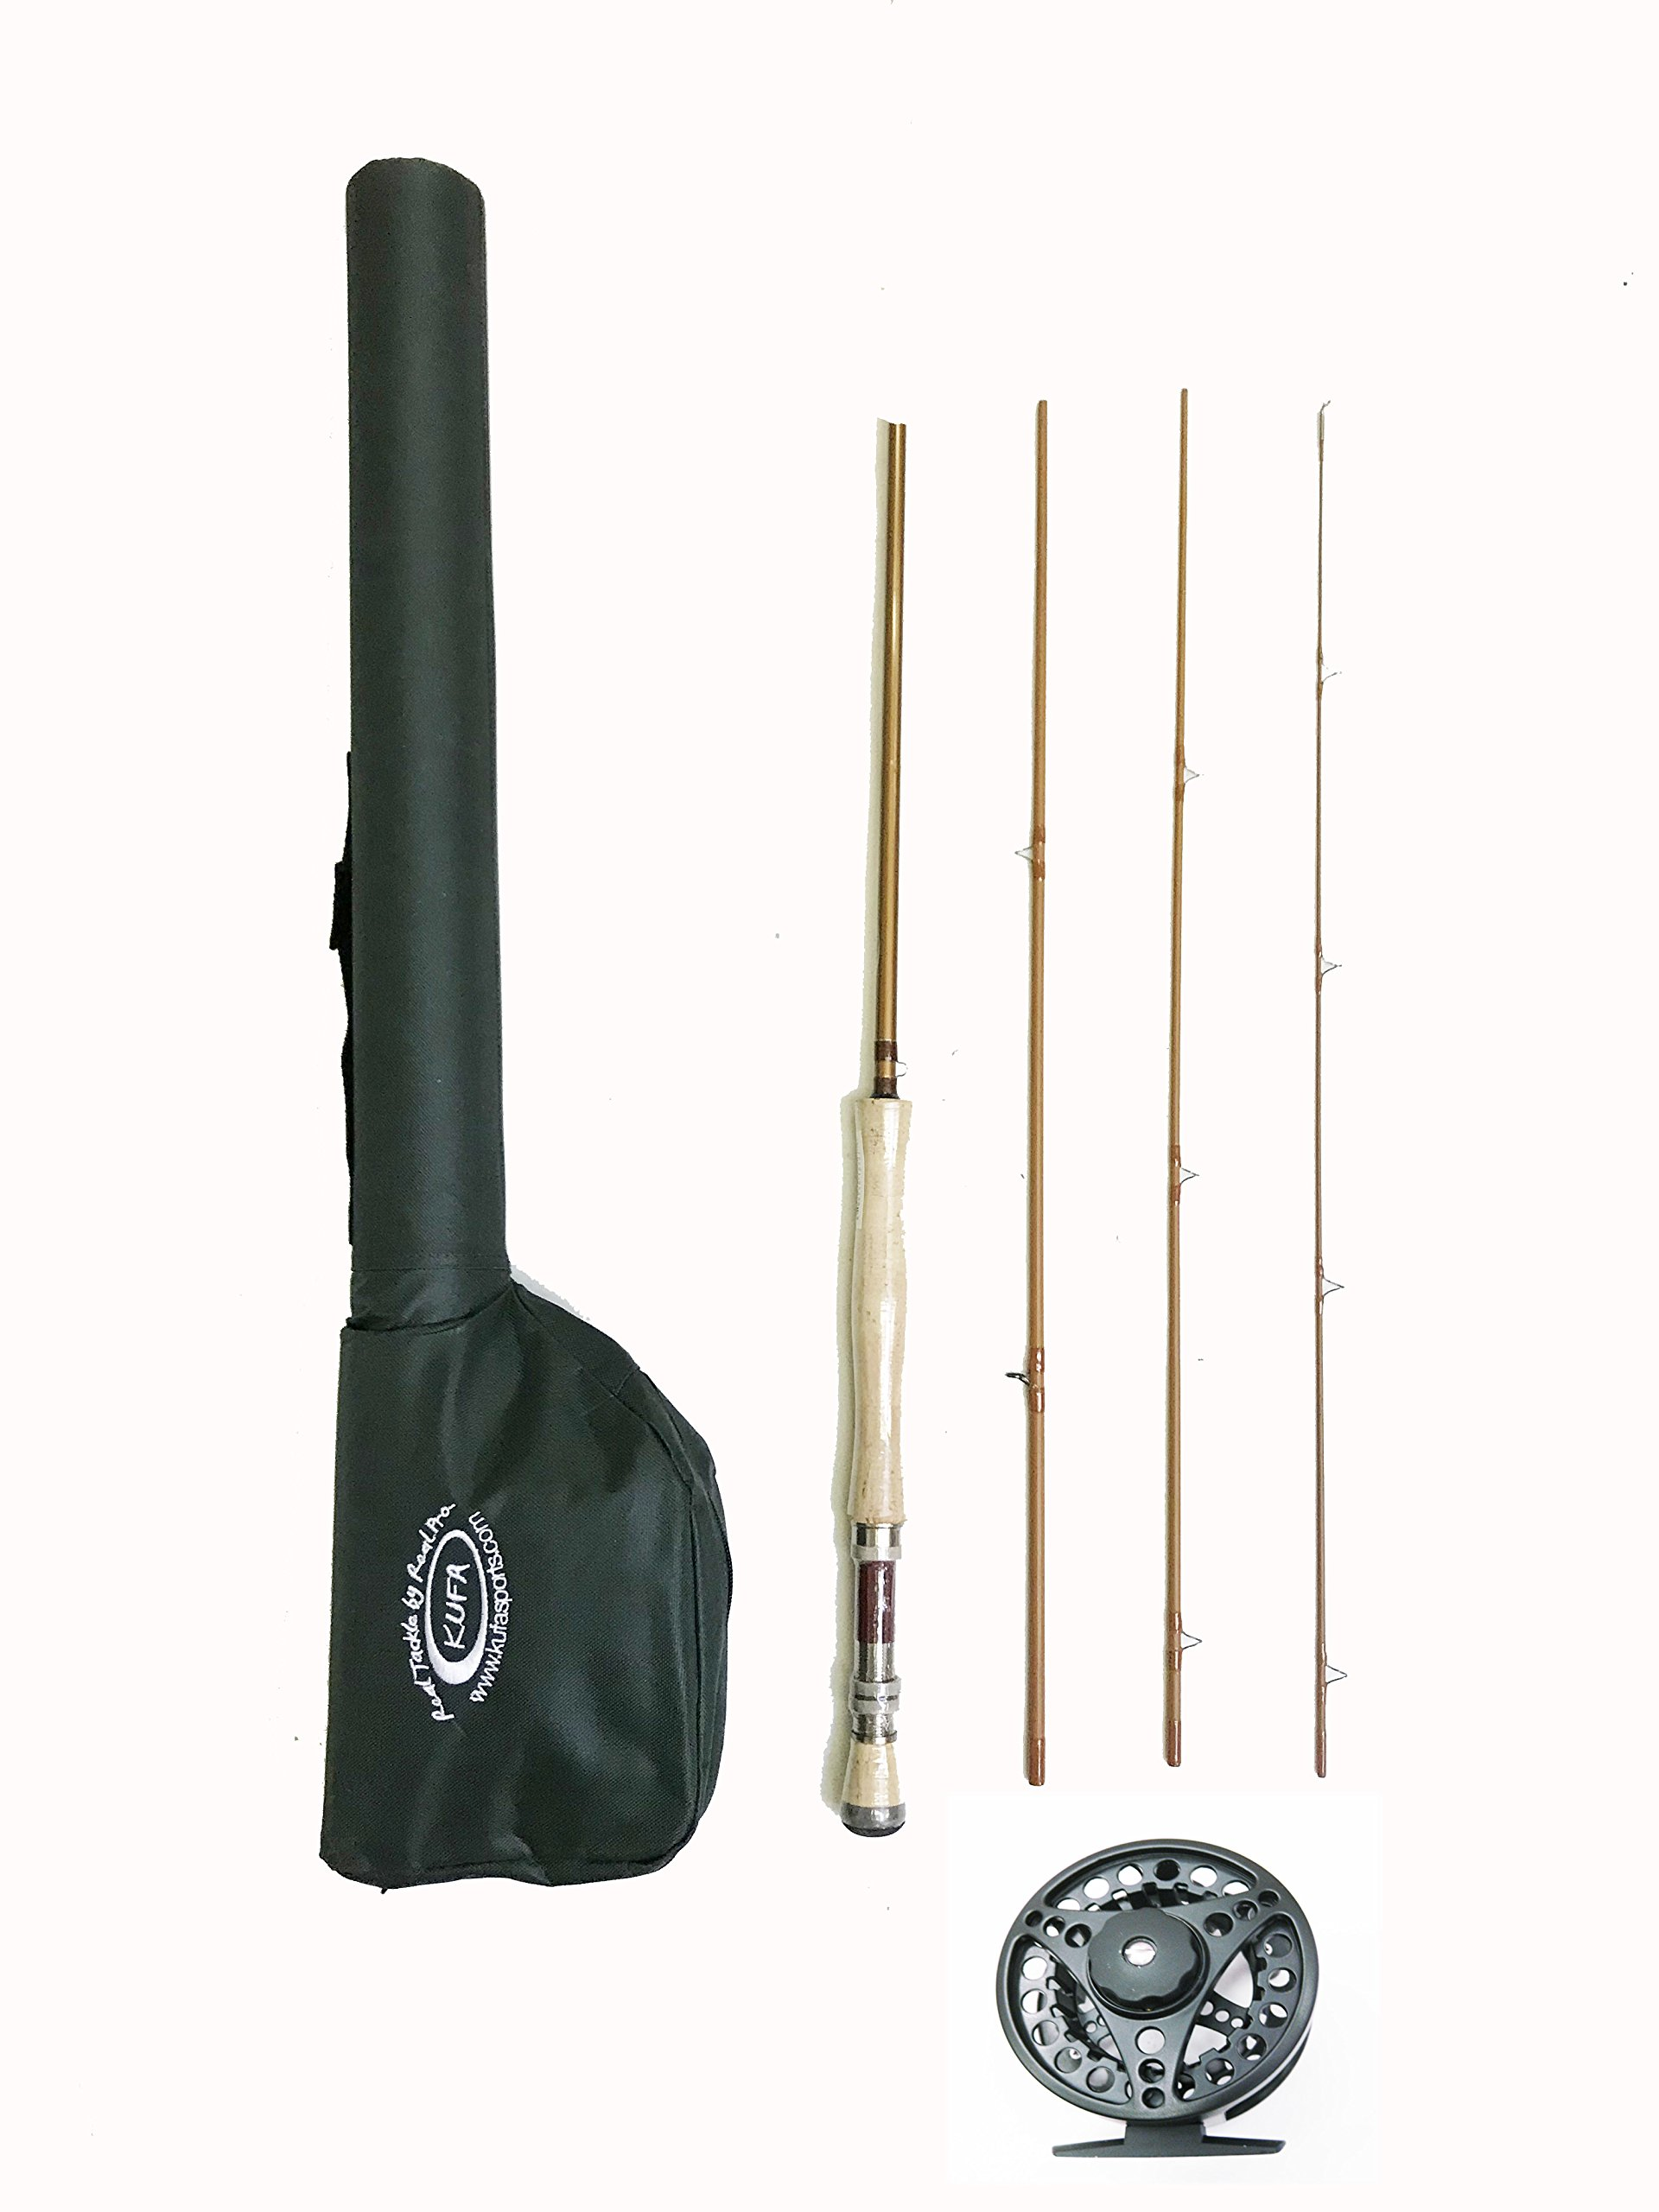 KUFA Sports 9' Graphite Fly Fishing Rod (4-Section, Line Weight #7/8), Aluminum Fly Reel & Carry Case Combo KFL9478+FR78+FL96 by KUFA Sports